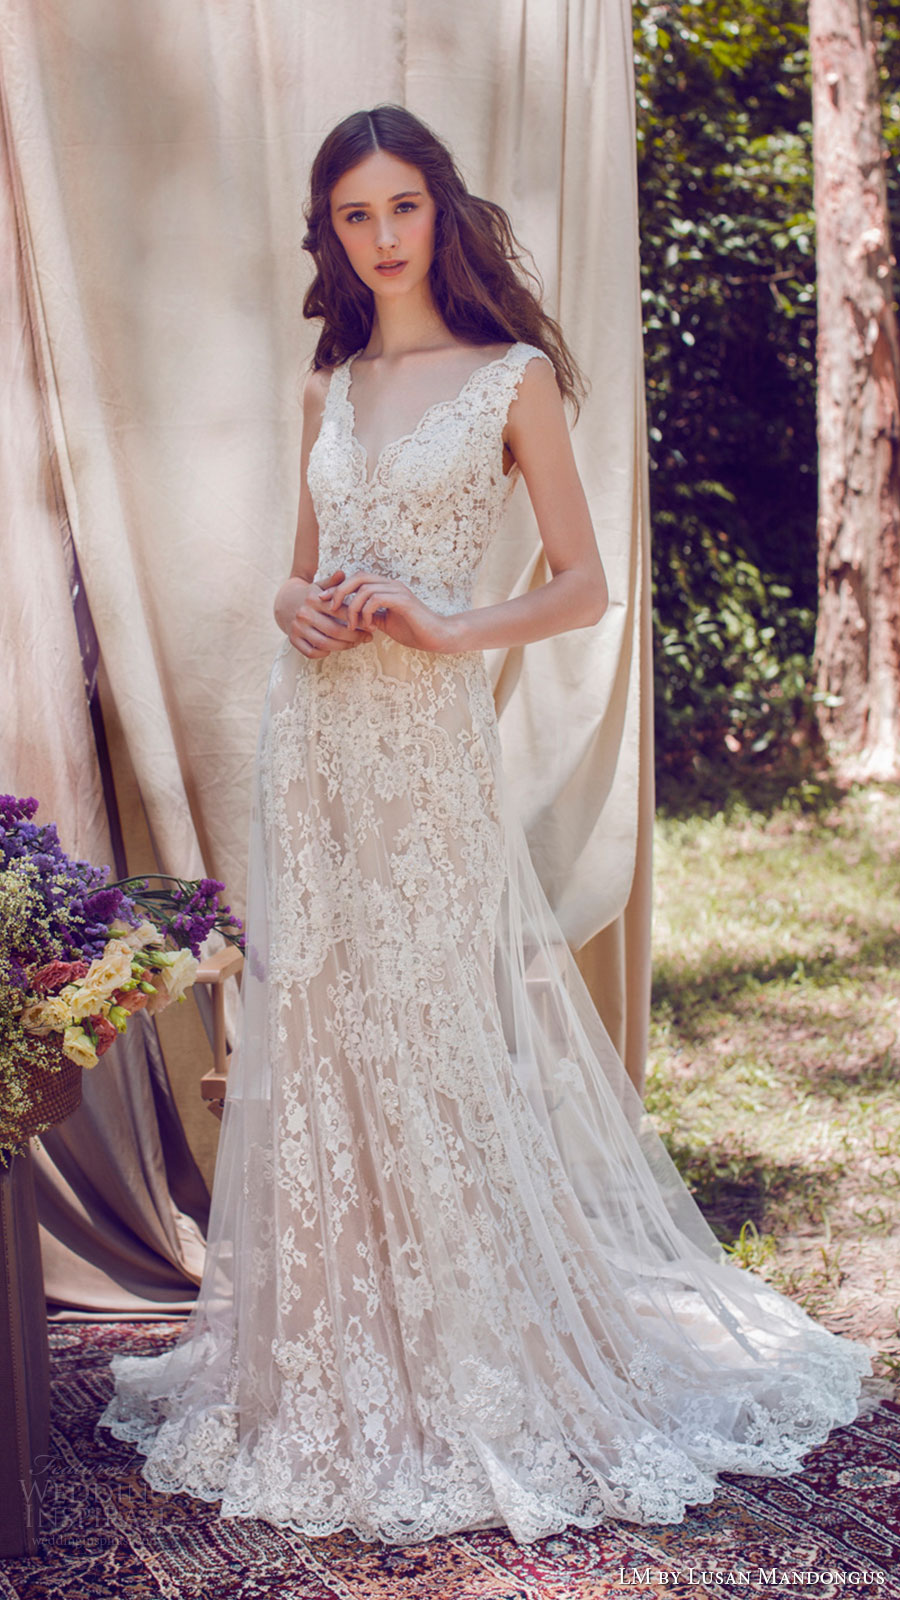 lm lusan mandongus bridal 2017 sleeveless vneck lace trumpet wedding dress (lm3250b) mv